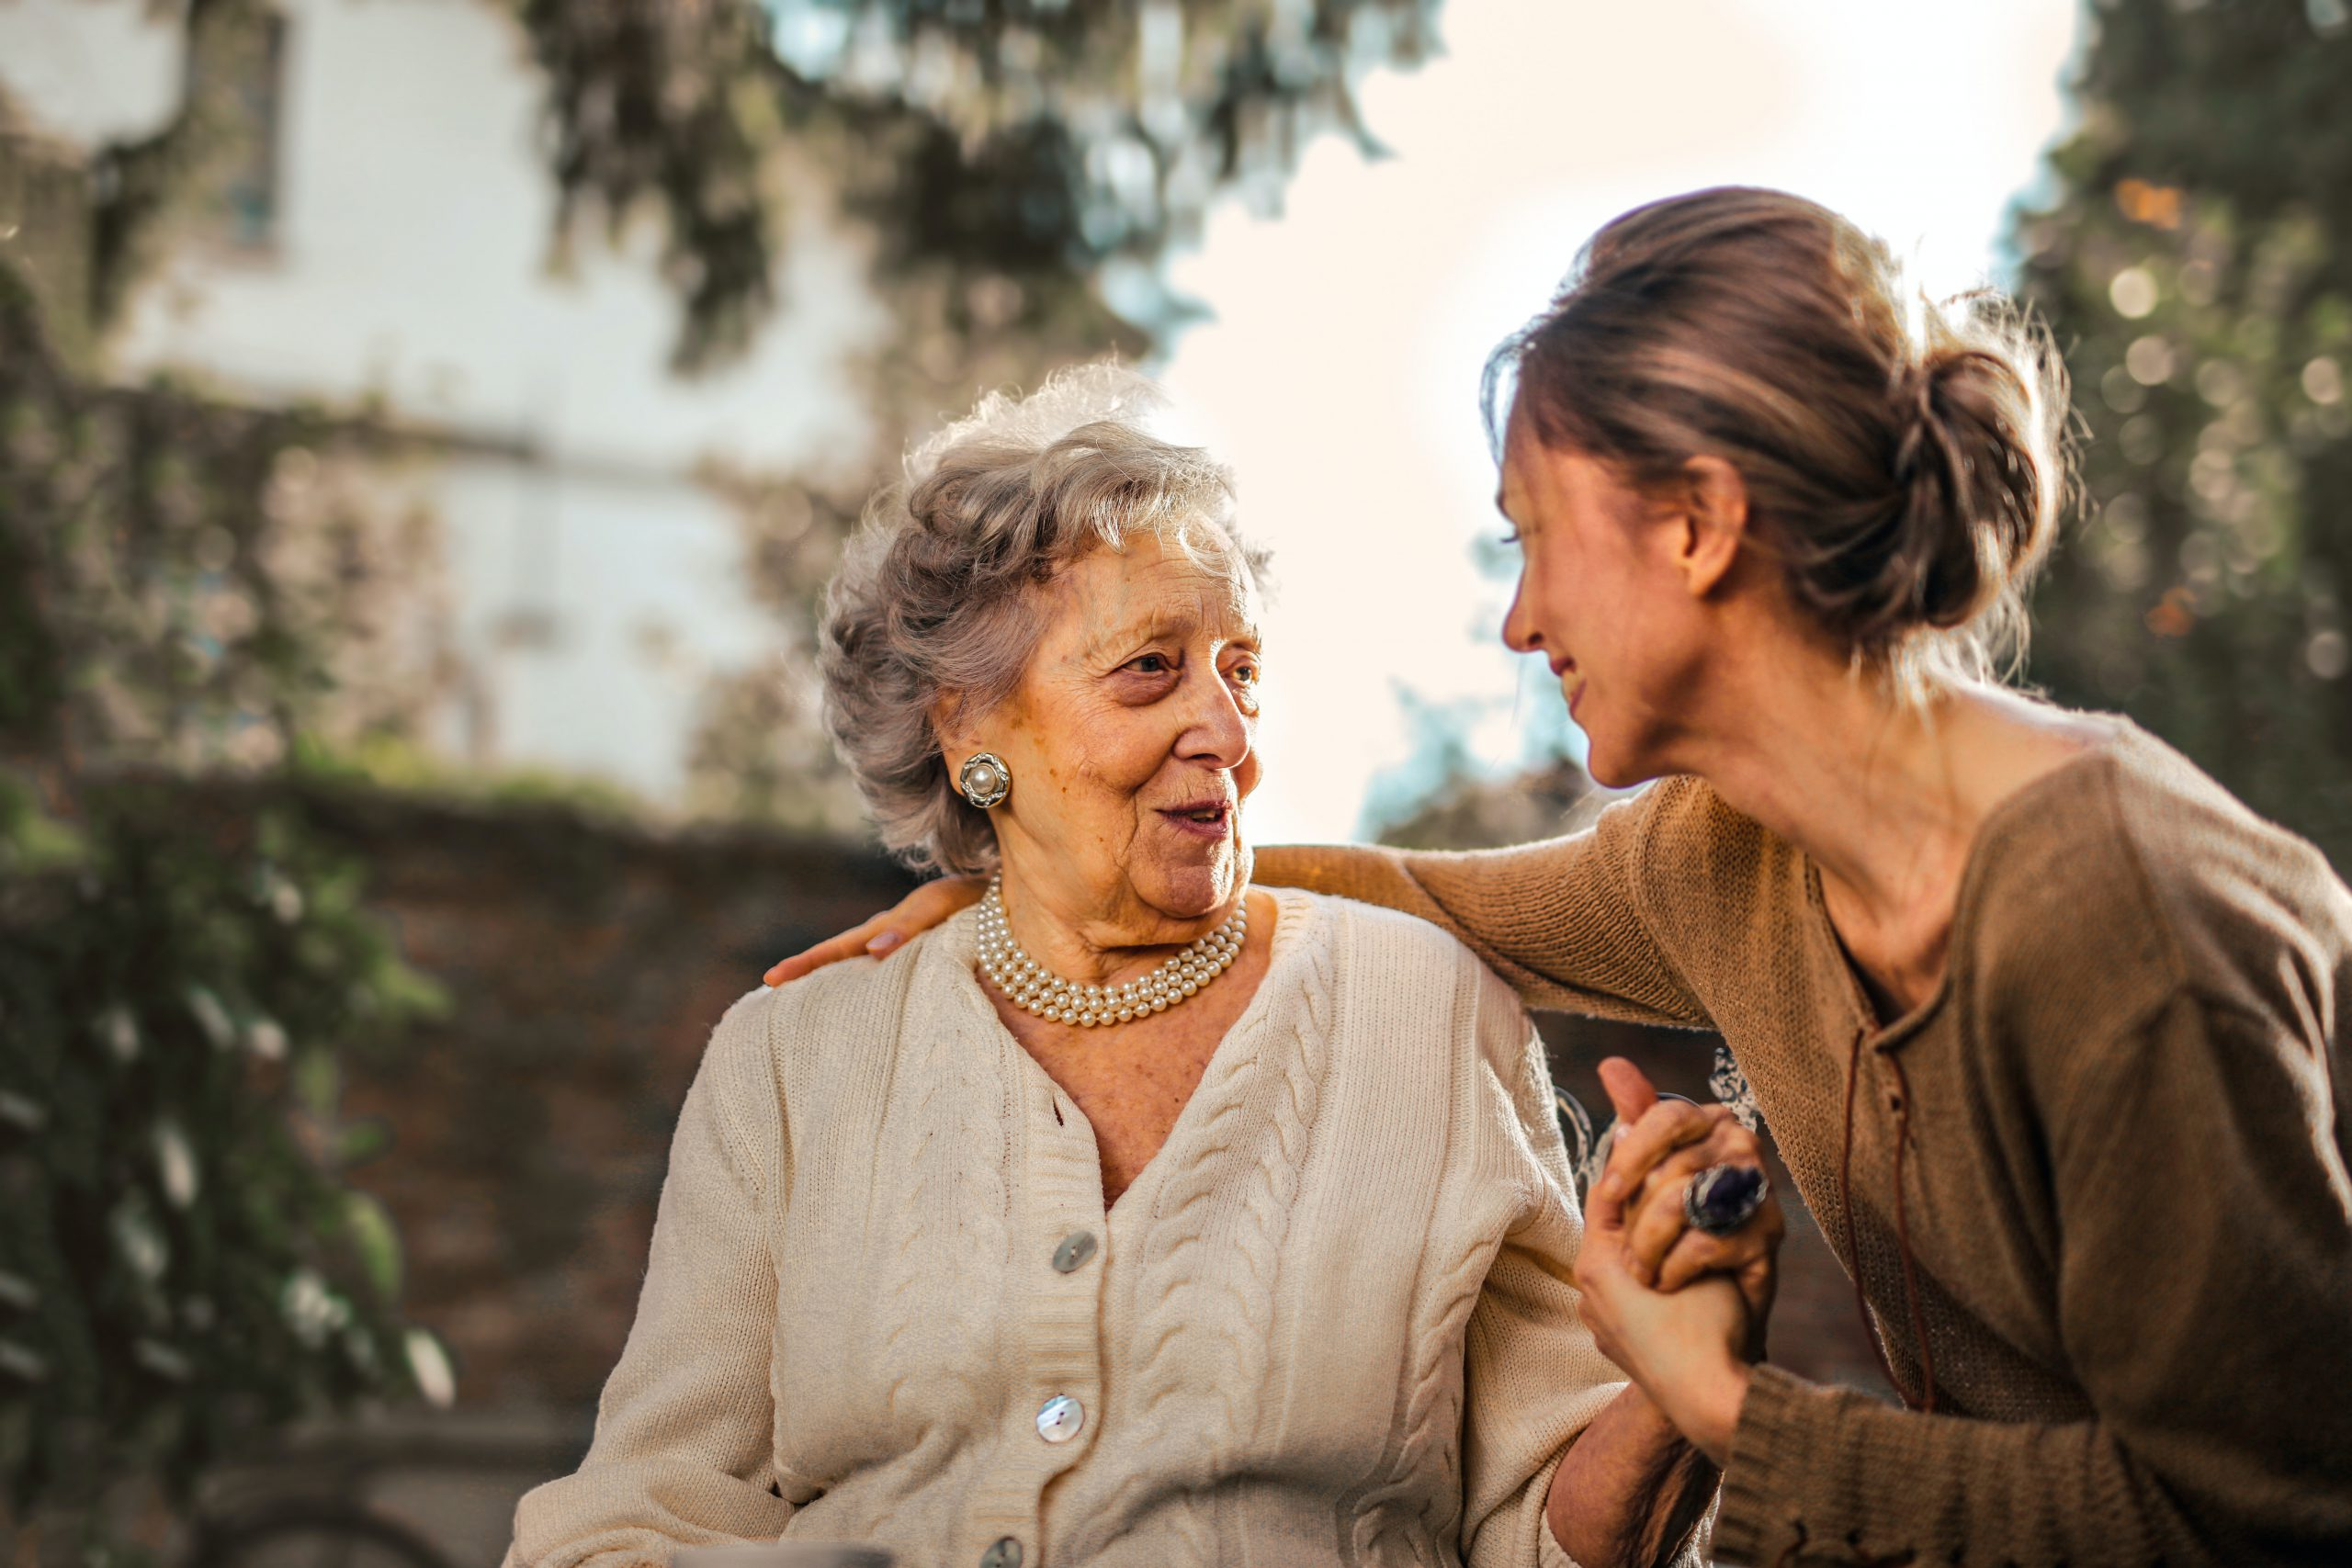 Life Insurance and a Will: Why Having Just One Or The Other Isn't Enough